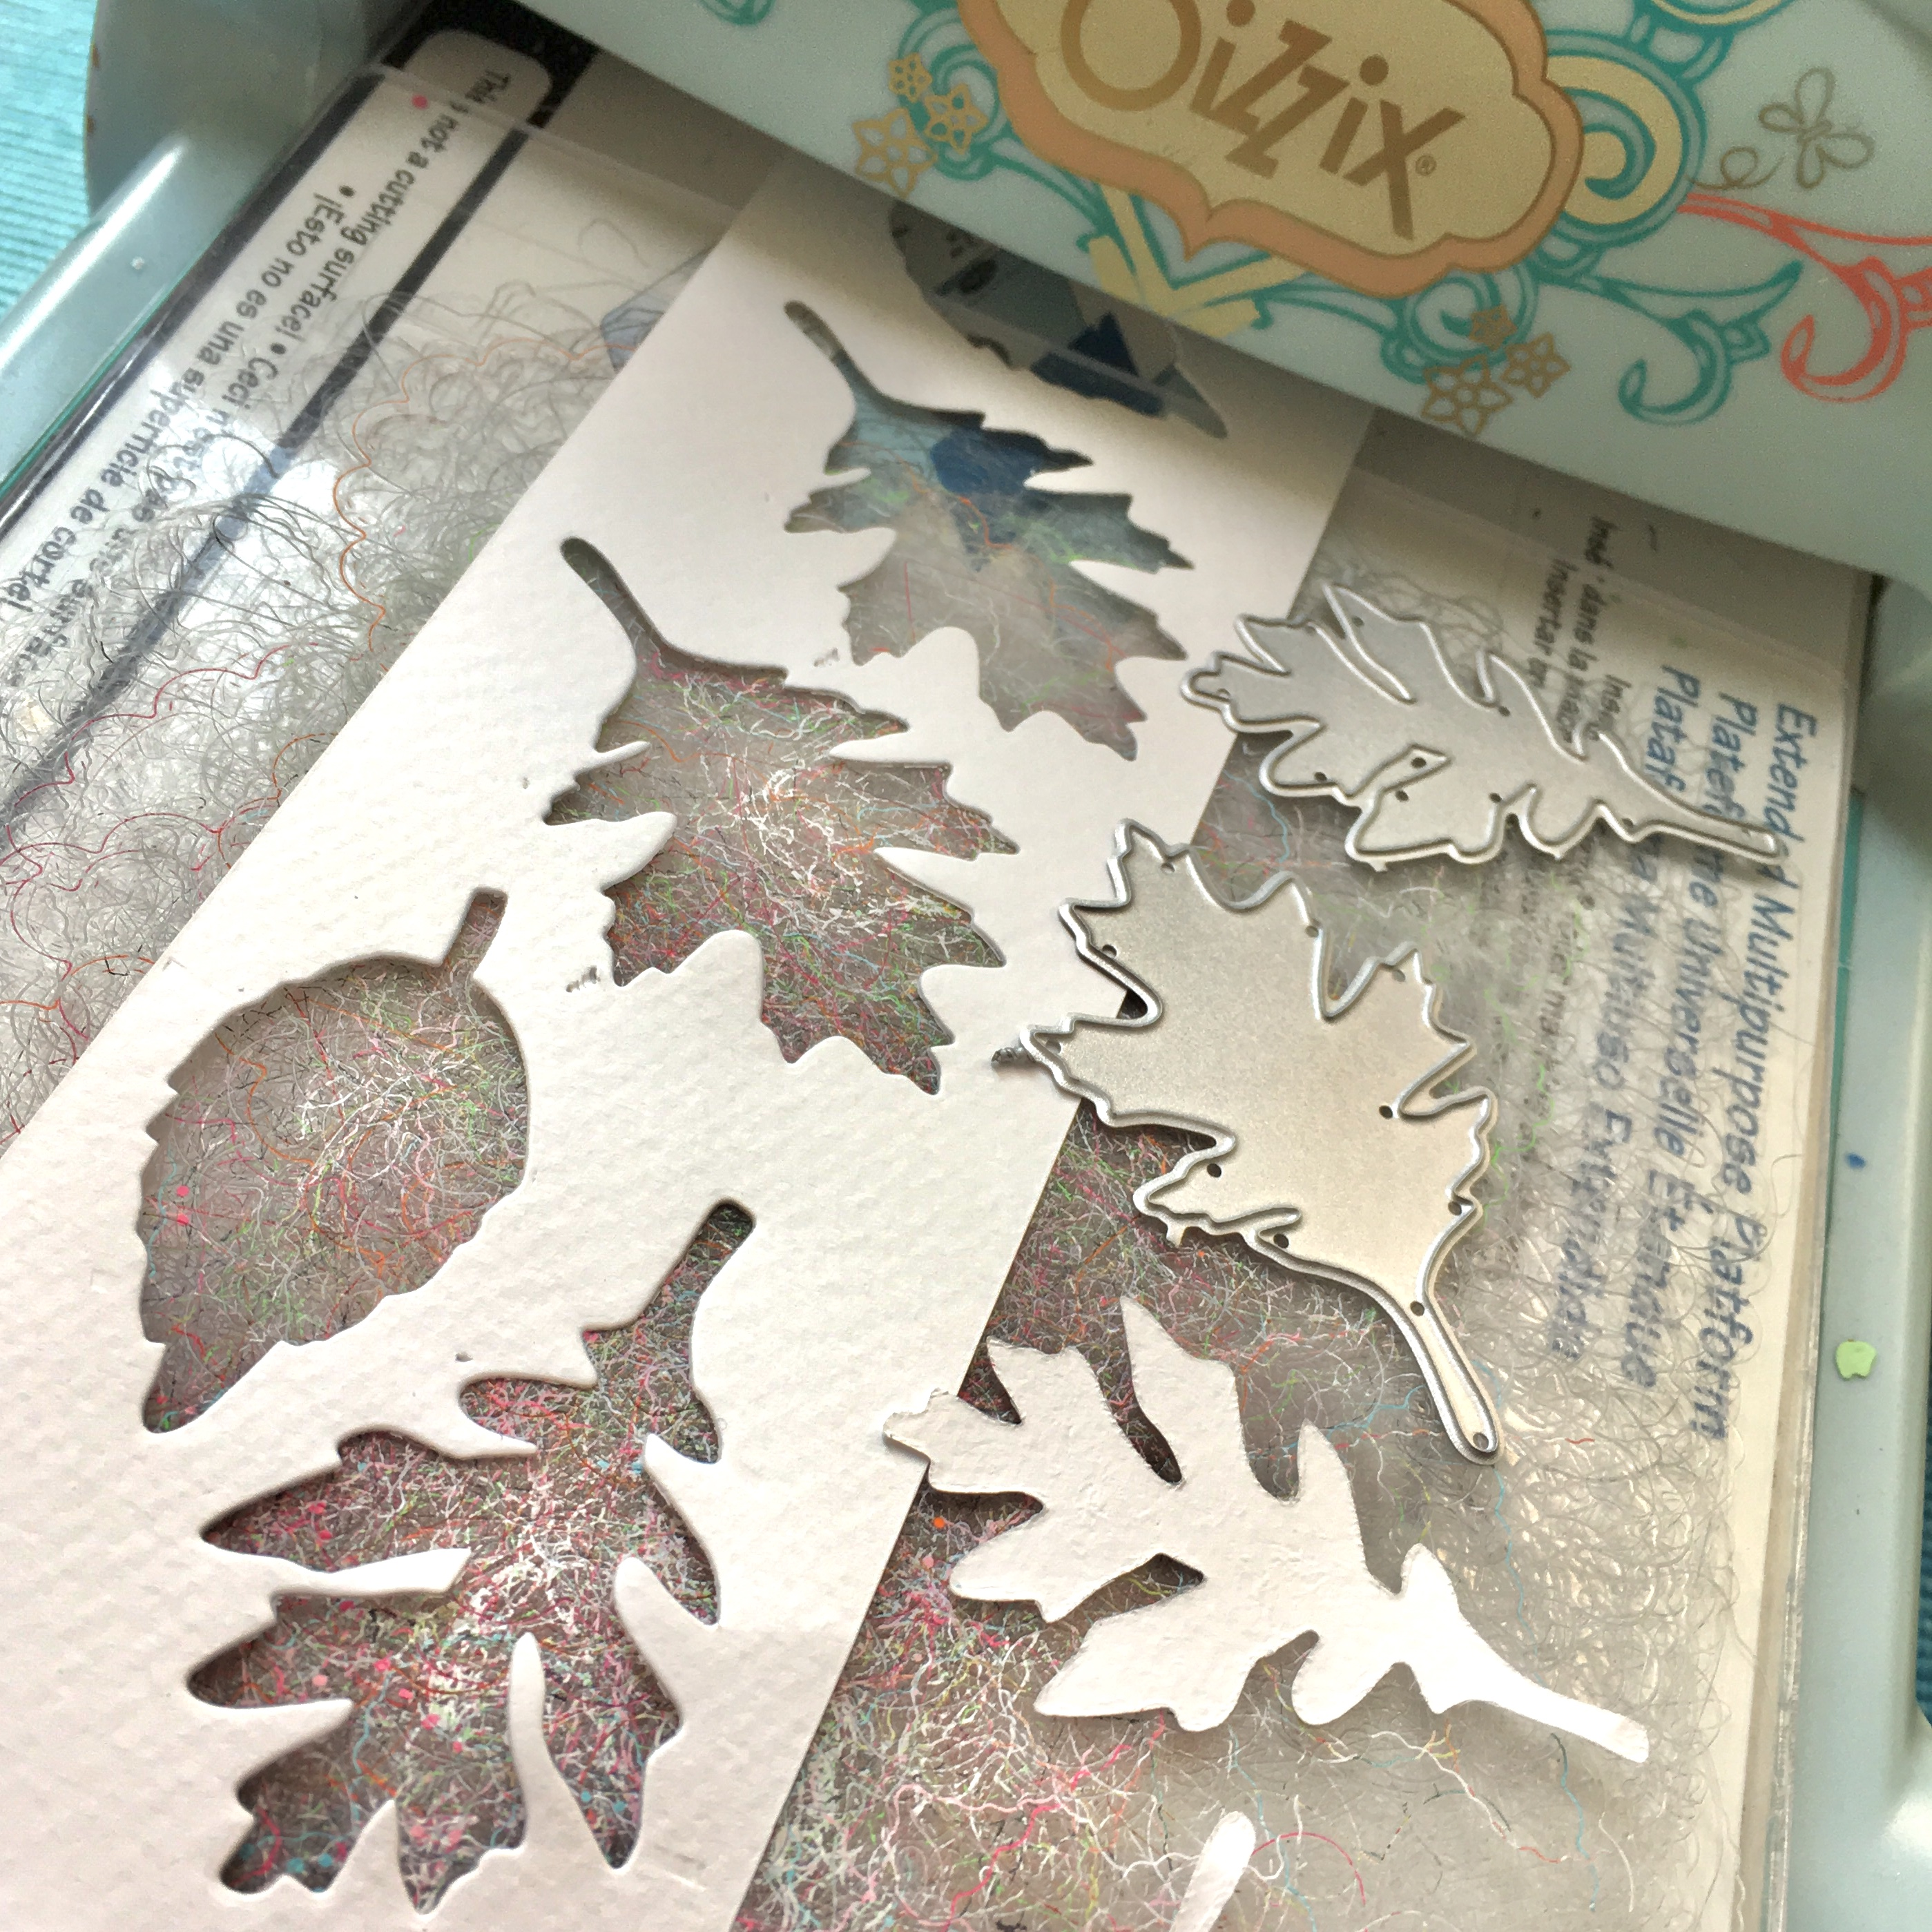 Sizzix Big shot machine and cut white leaves